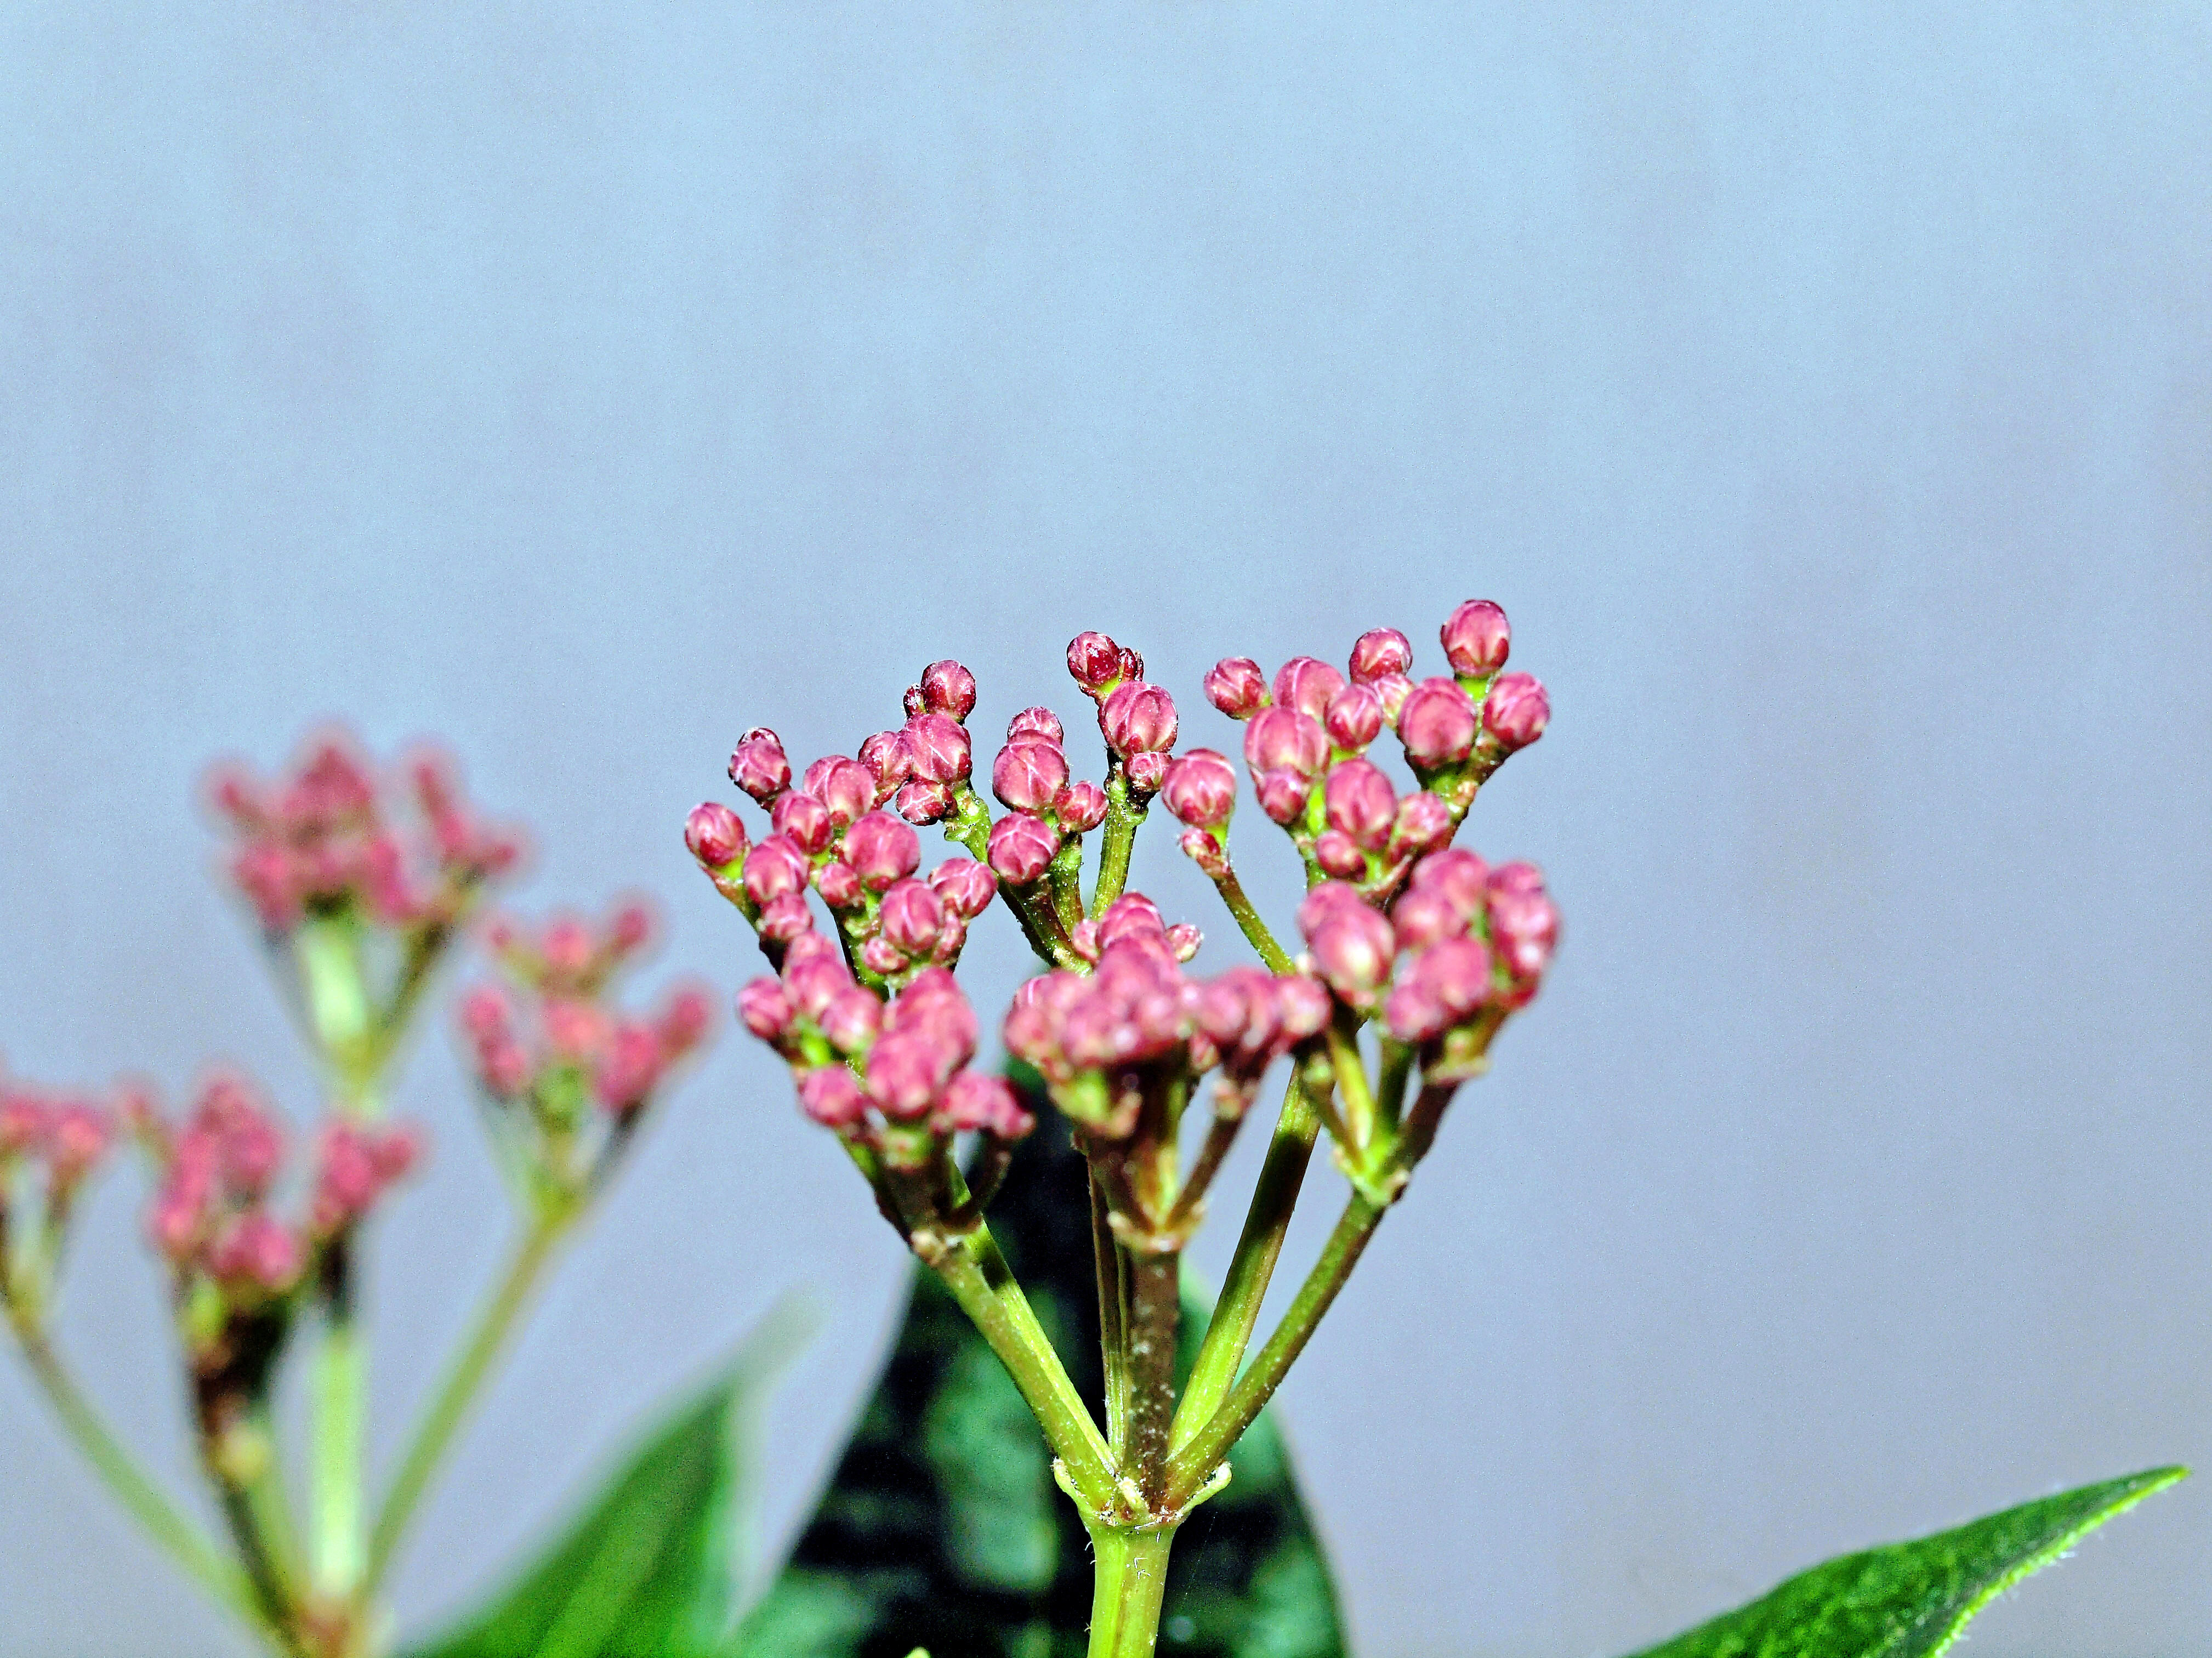 This should be Viburnum-buds-2.jpeg.  Is it missing?